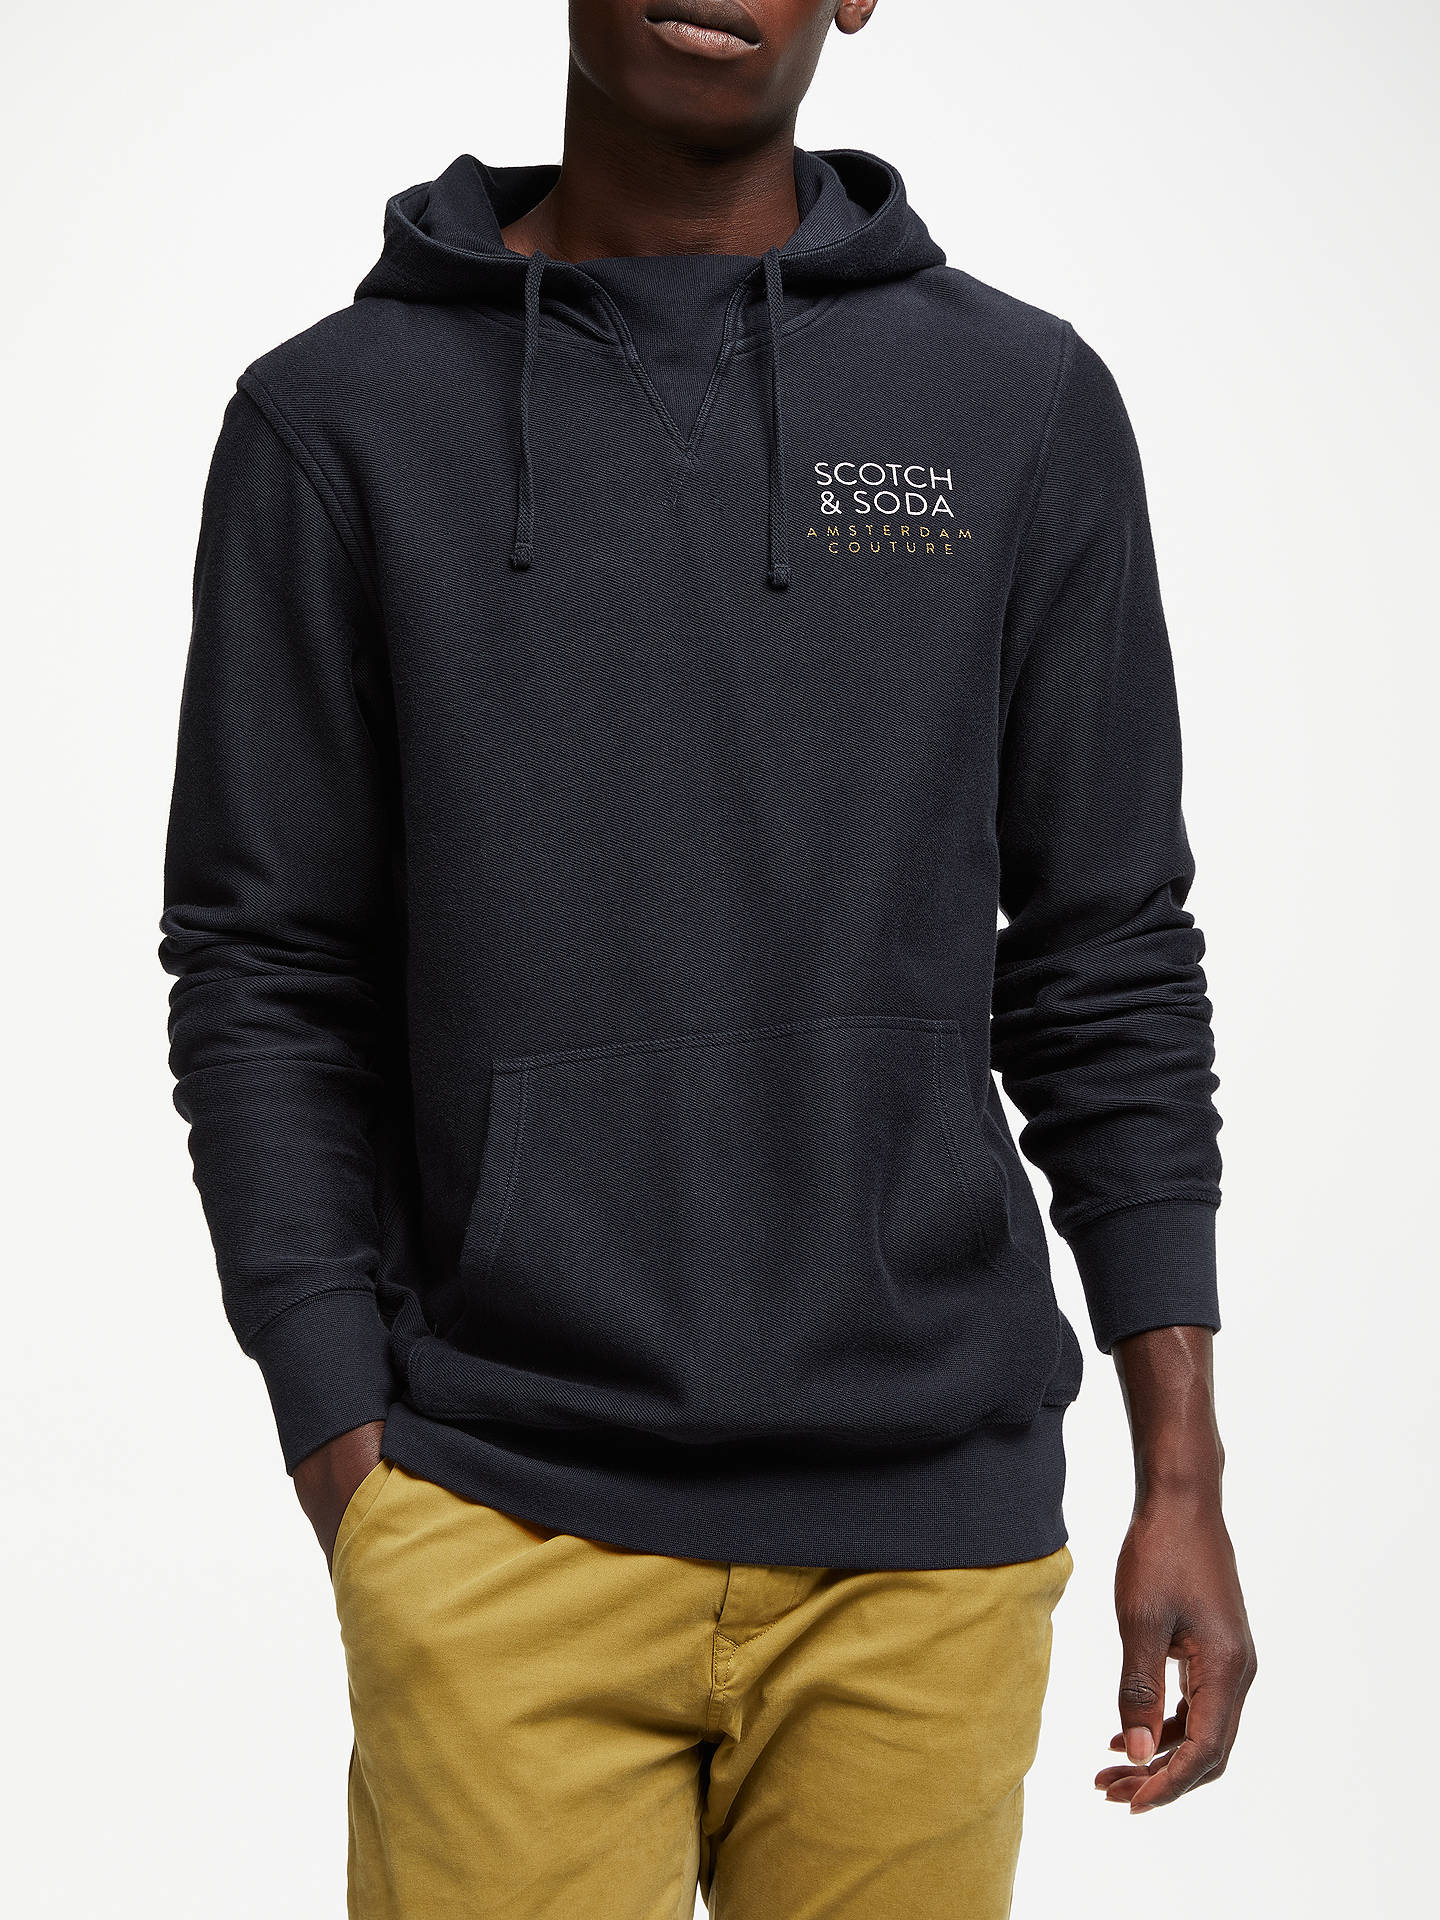 BuyScotch & Soda Clean Hoodie, Midnight, M Online at johnlewis.com